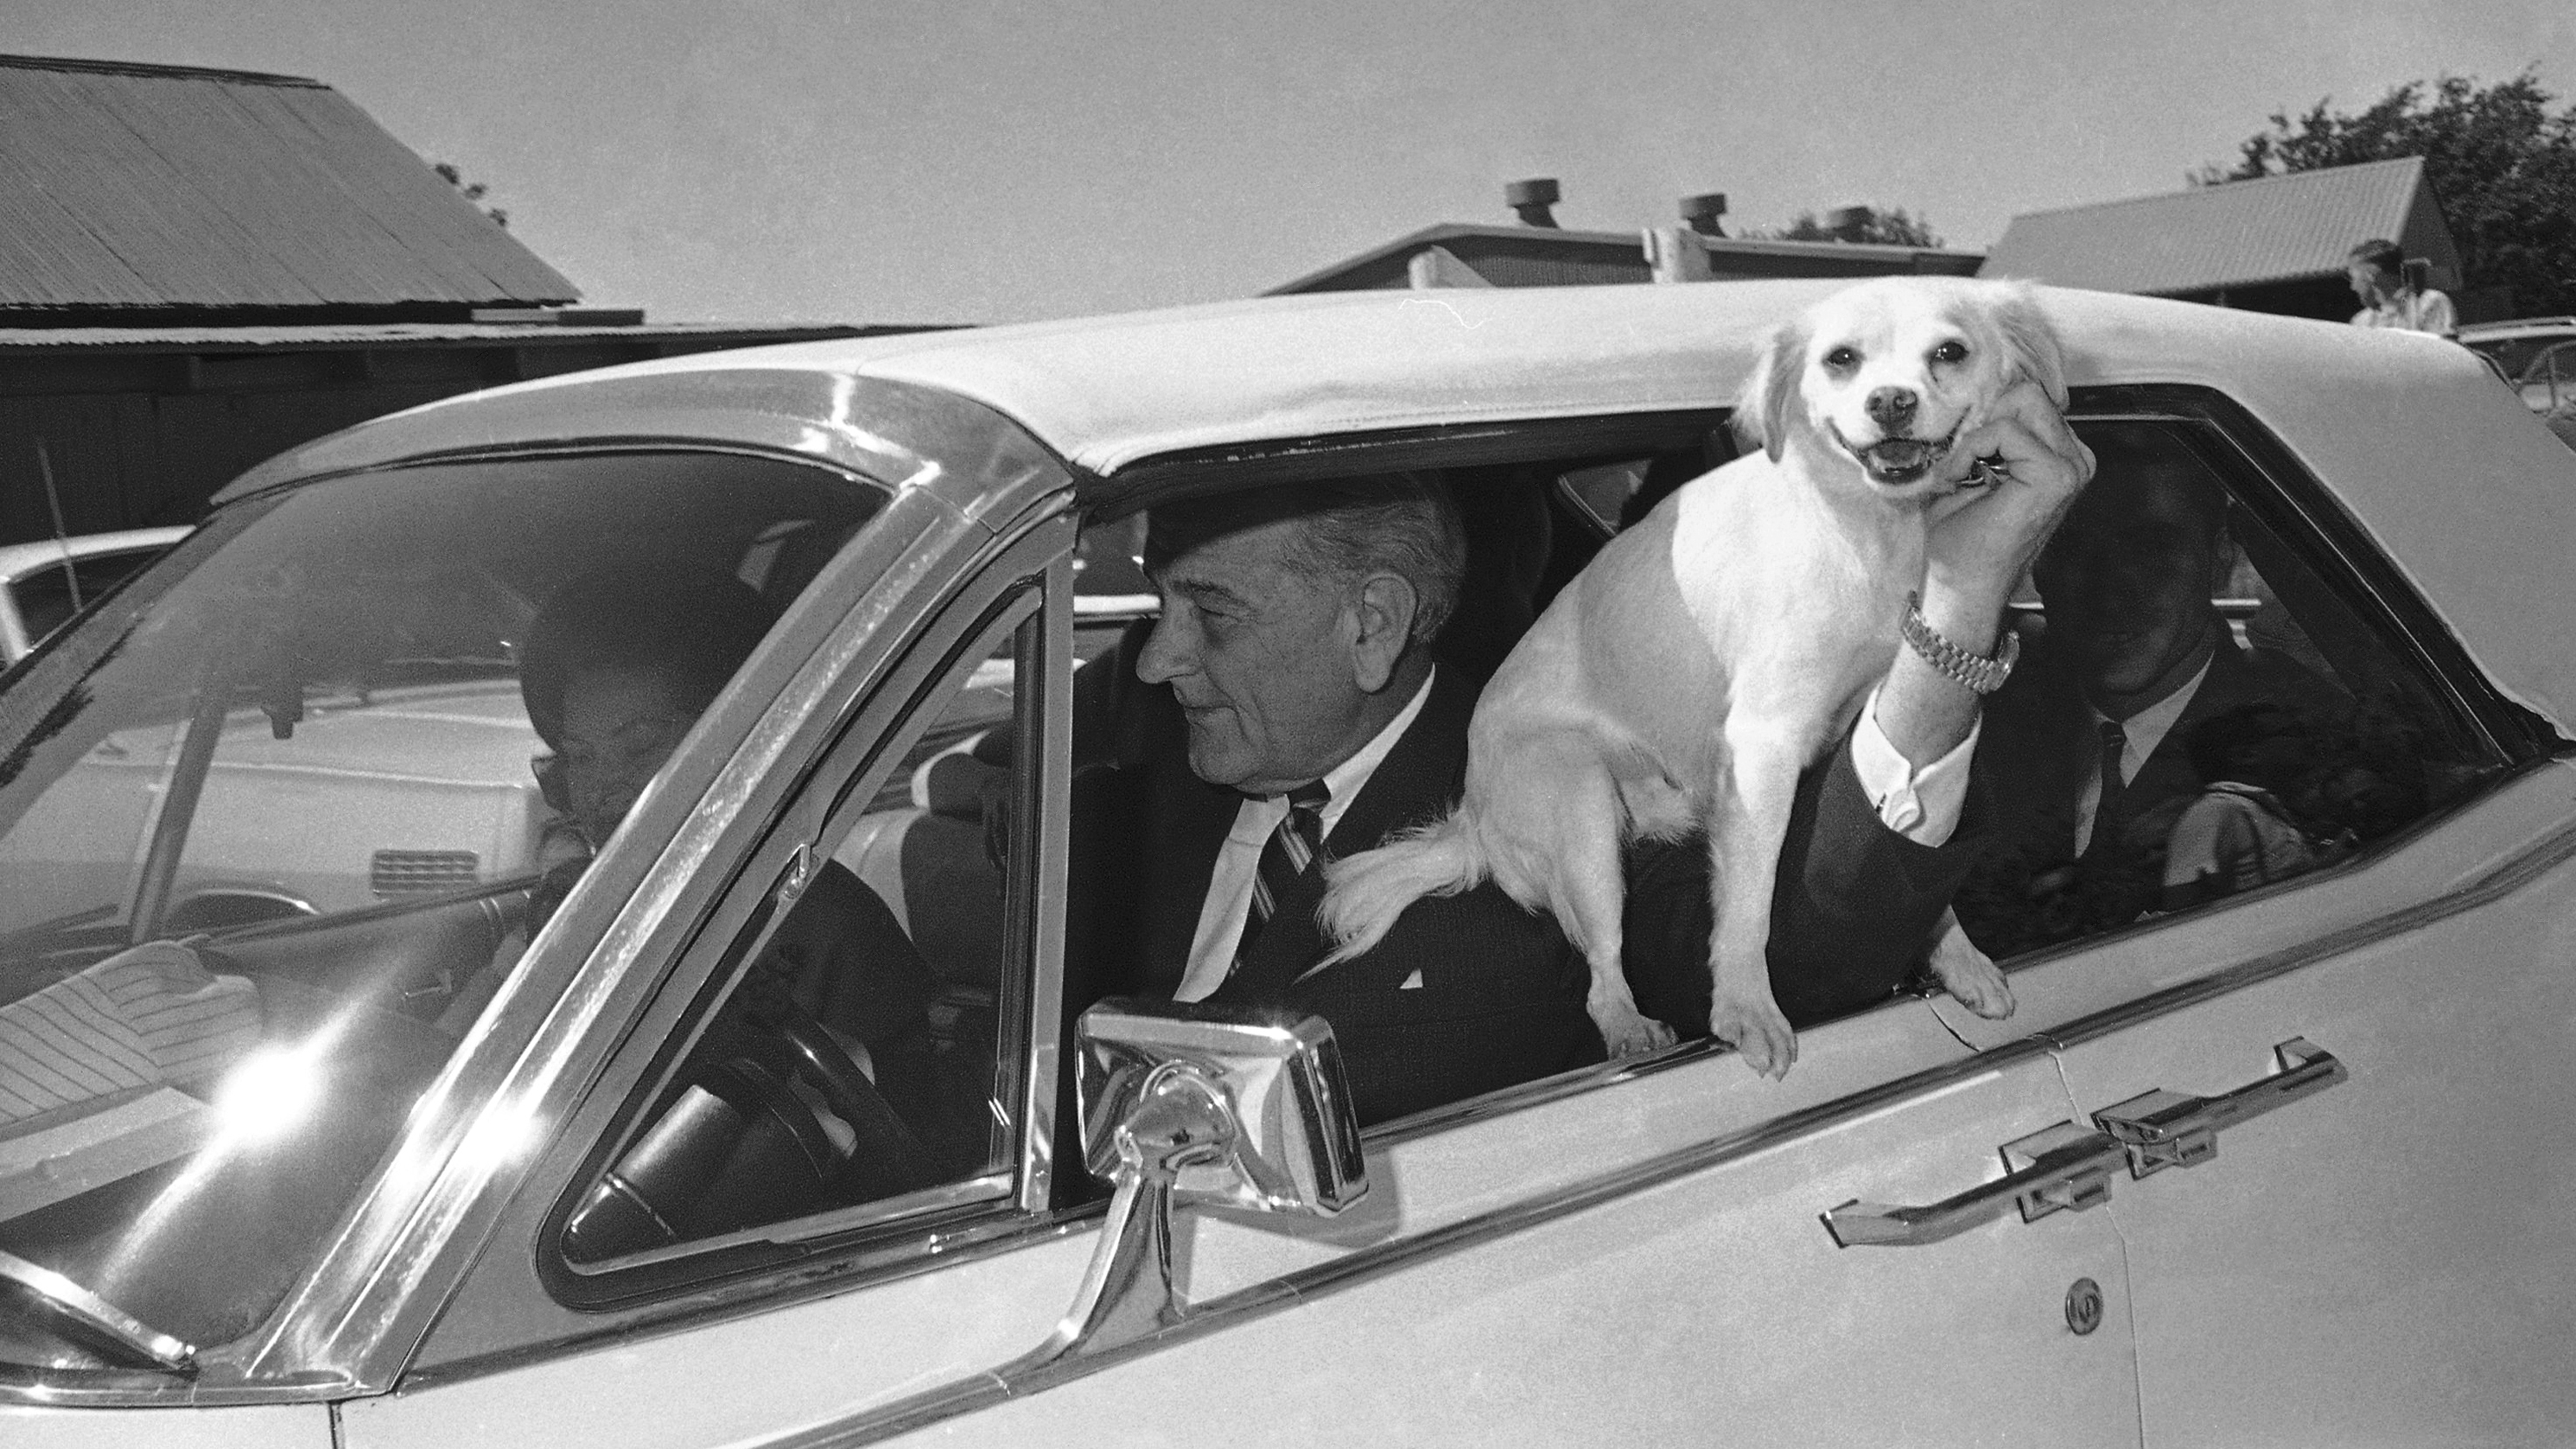 Yuki, President Lyndon Johnson's dog, is held out the window of the car driven by LBJ as the first family starts a ride around the Texas ranch in Stonewall